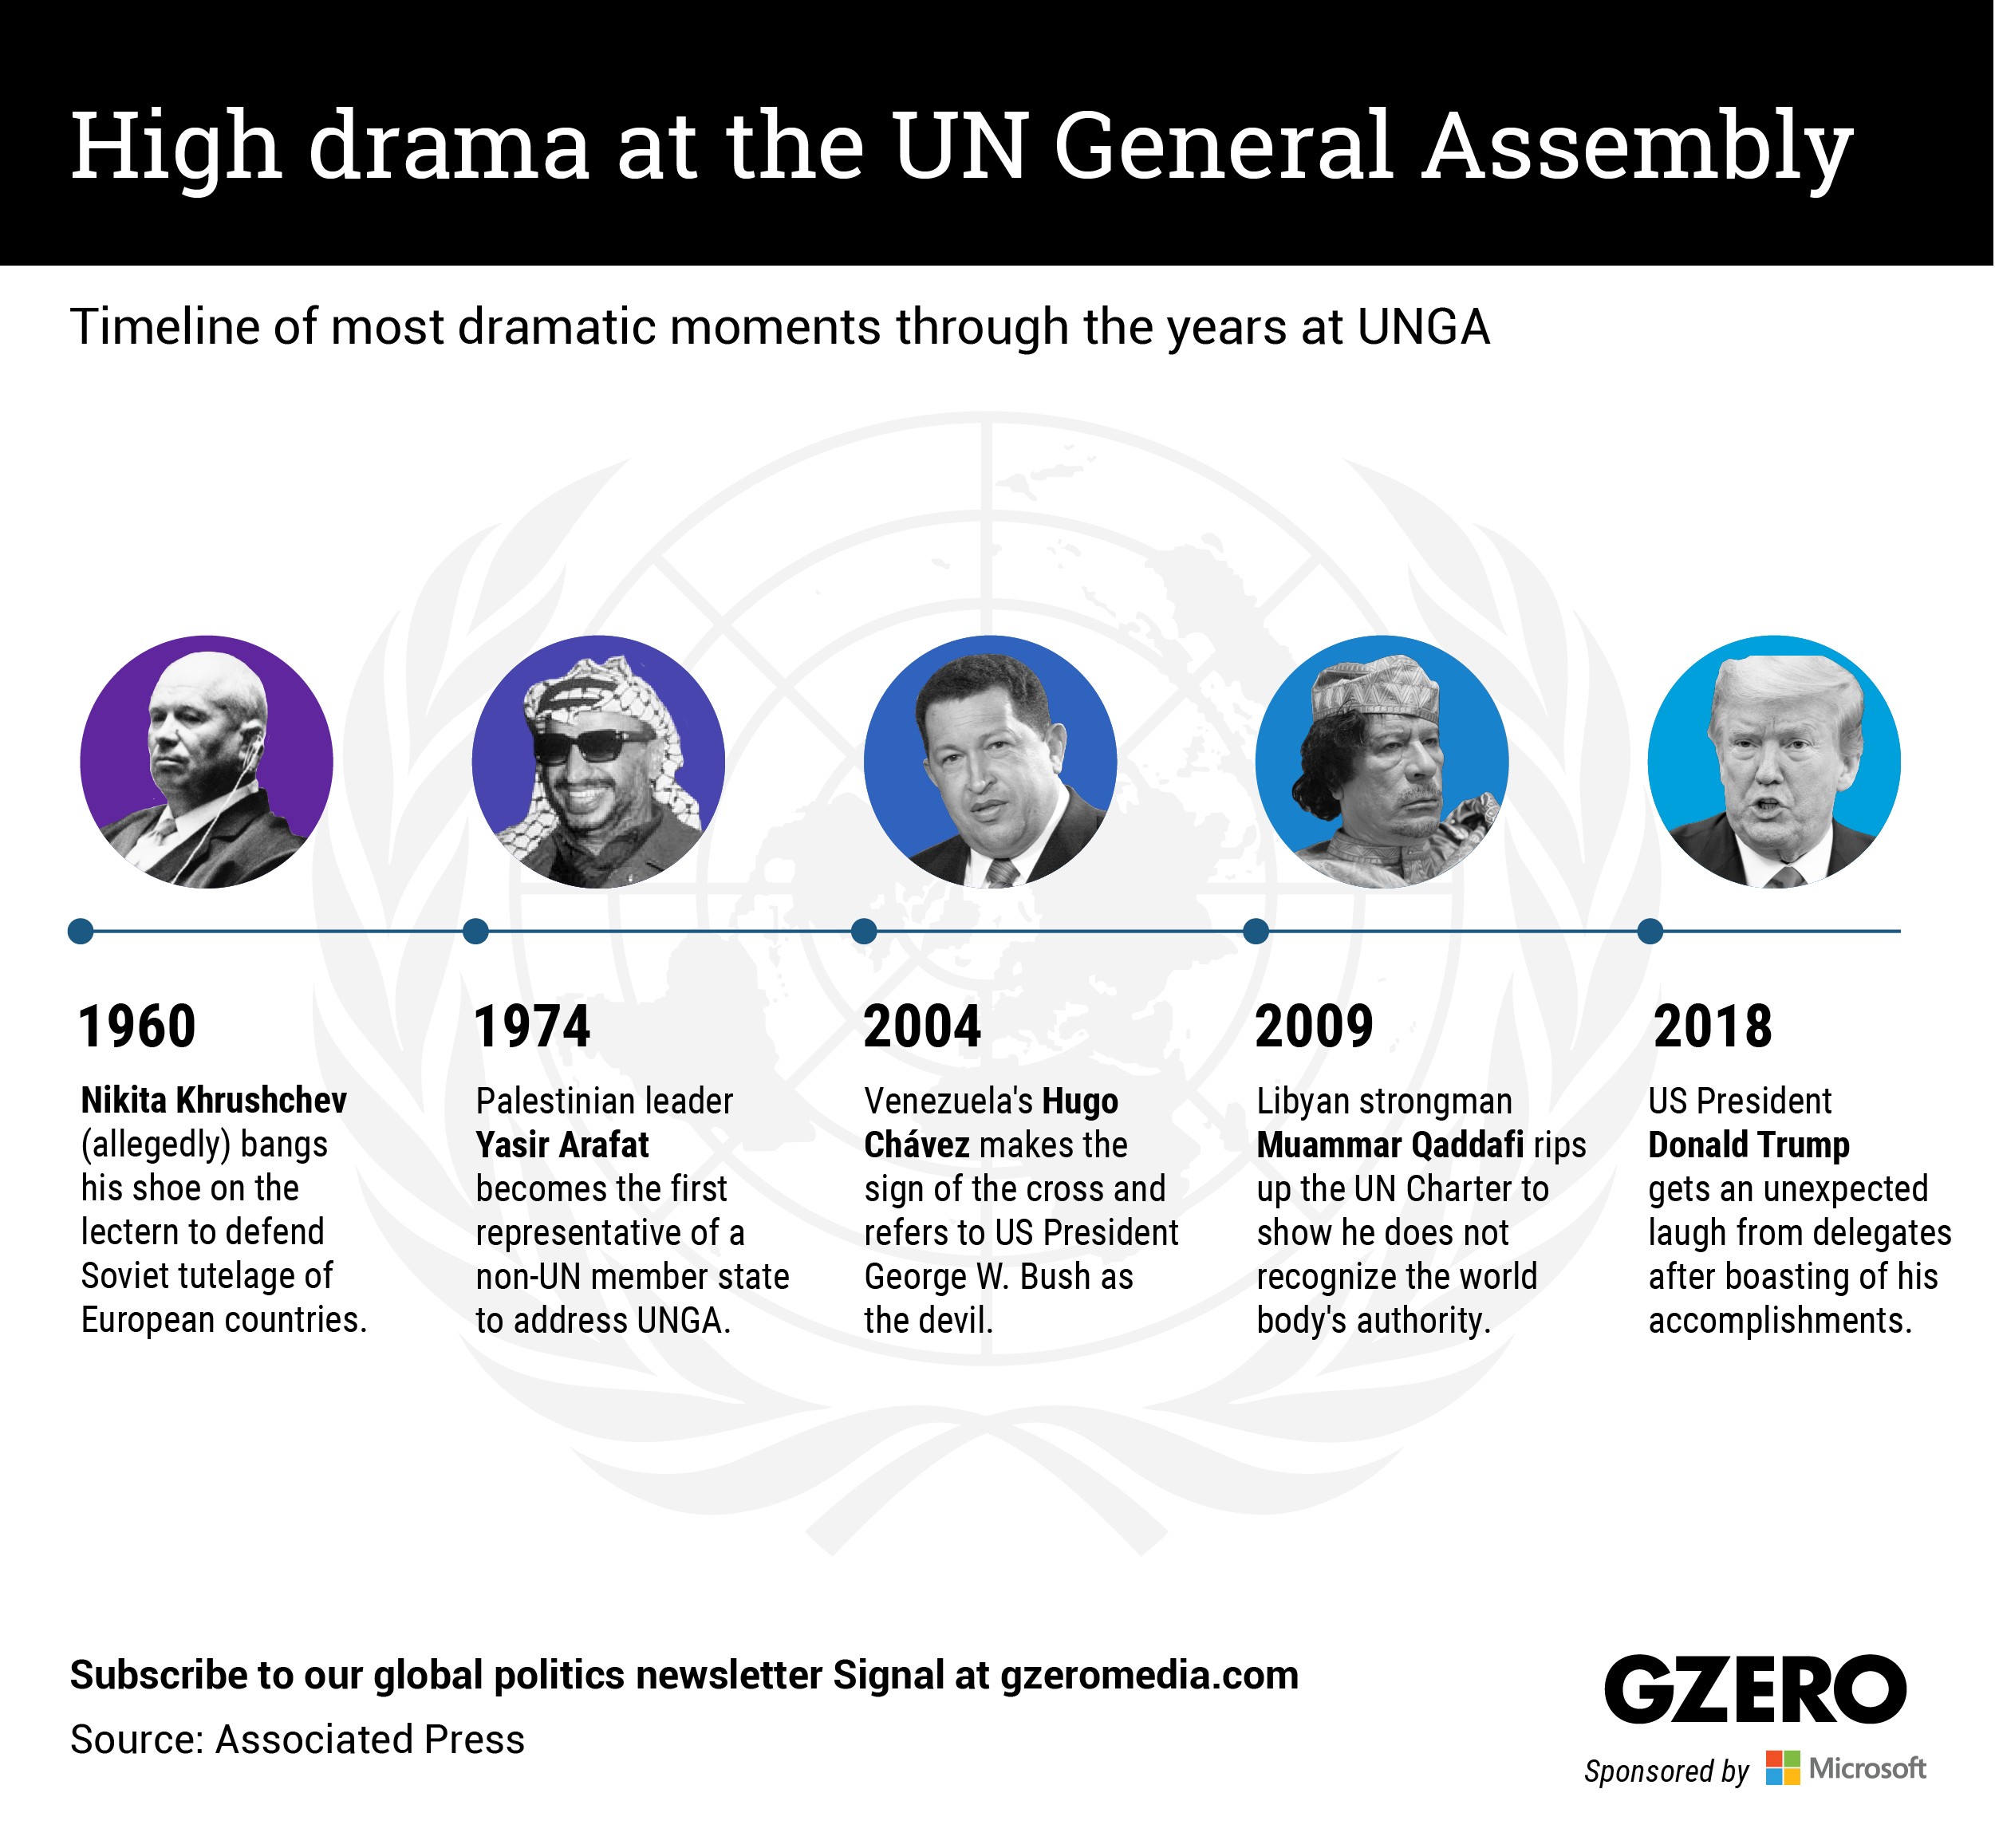 The Graphic Truth: High drama at the UN General Assembly